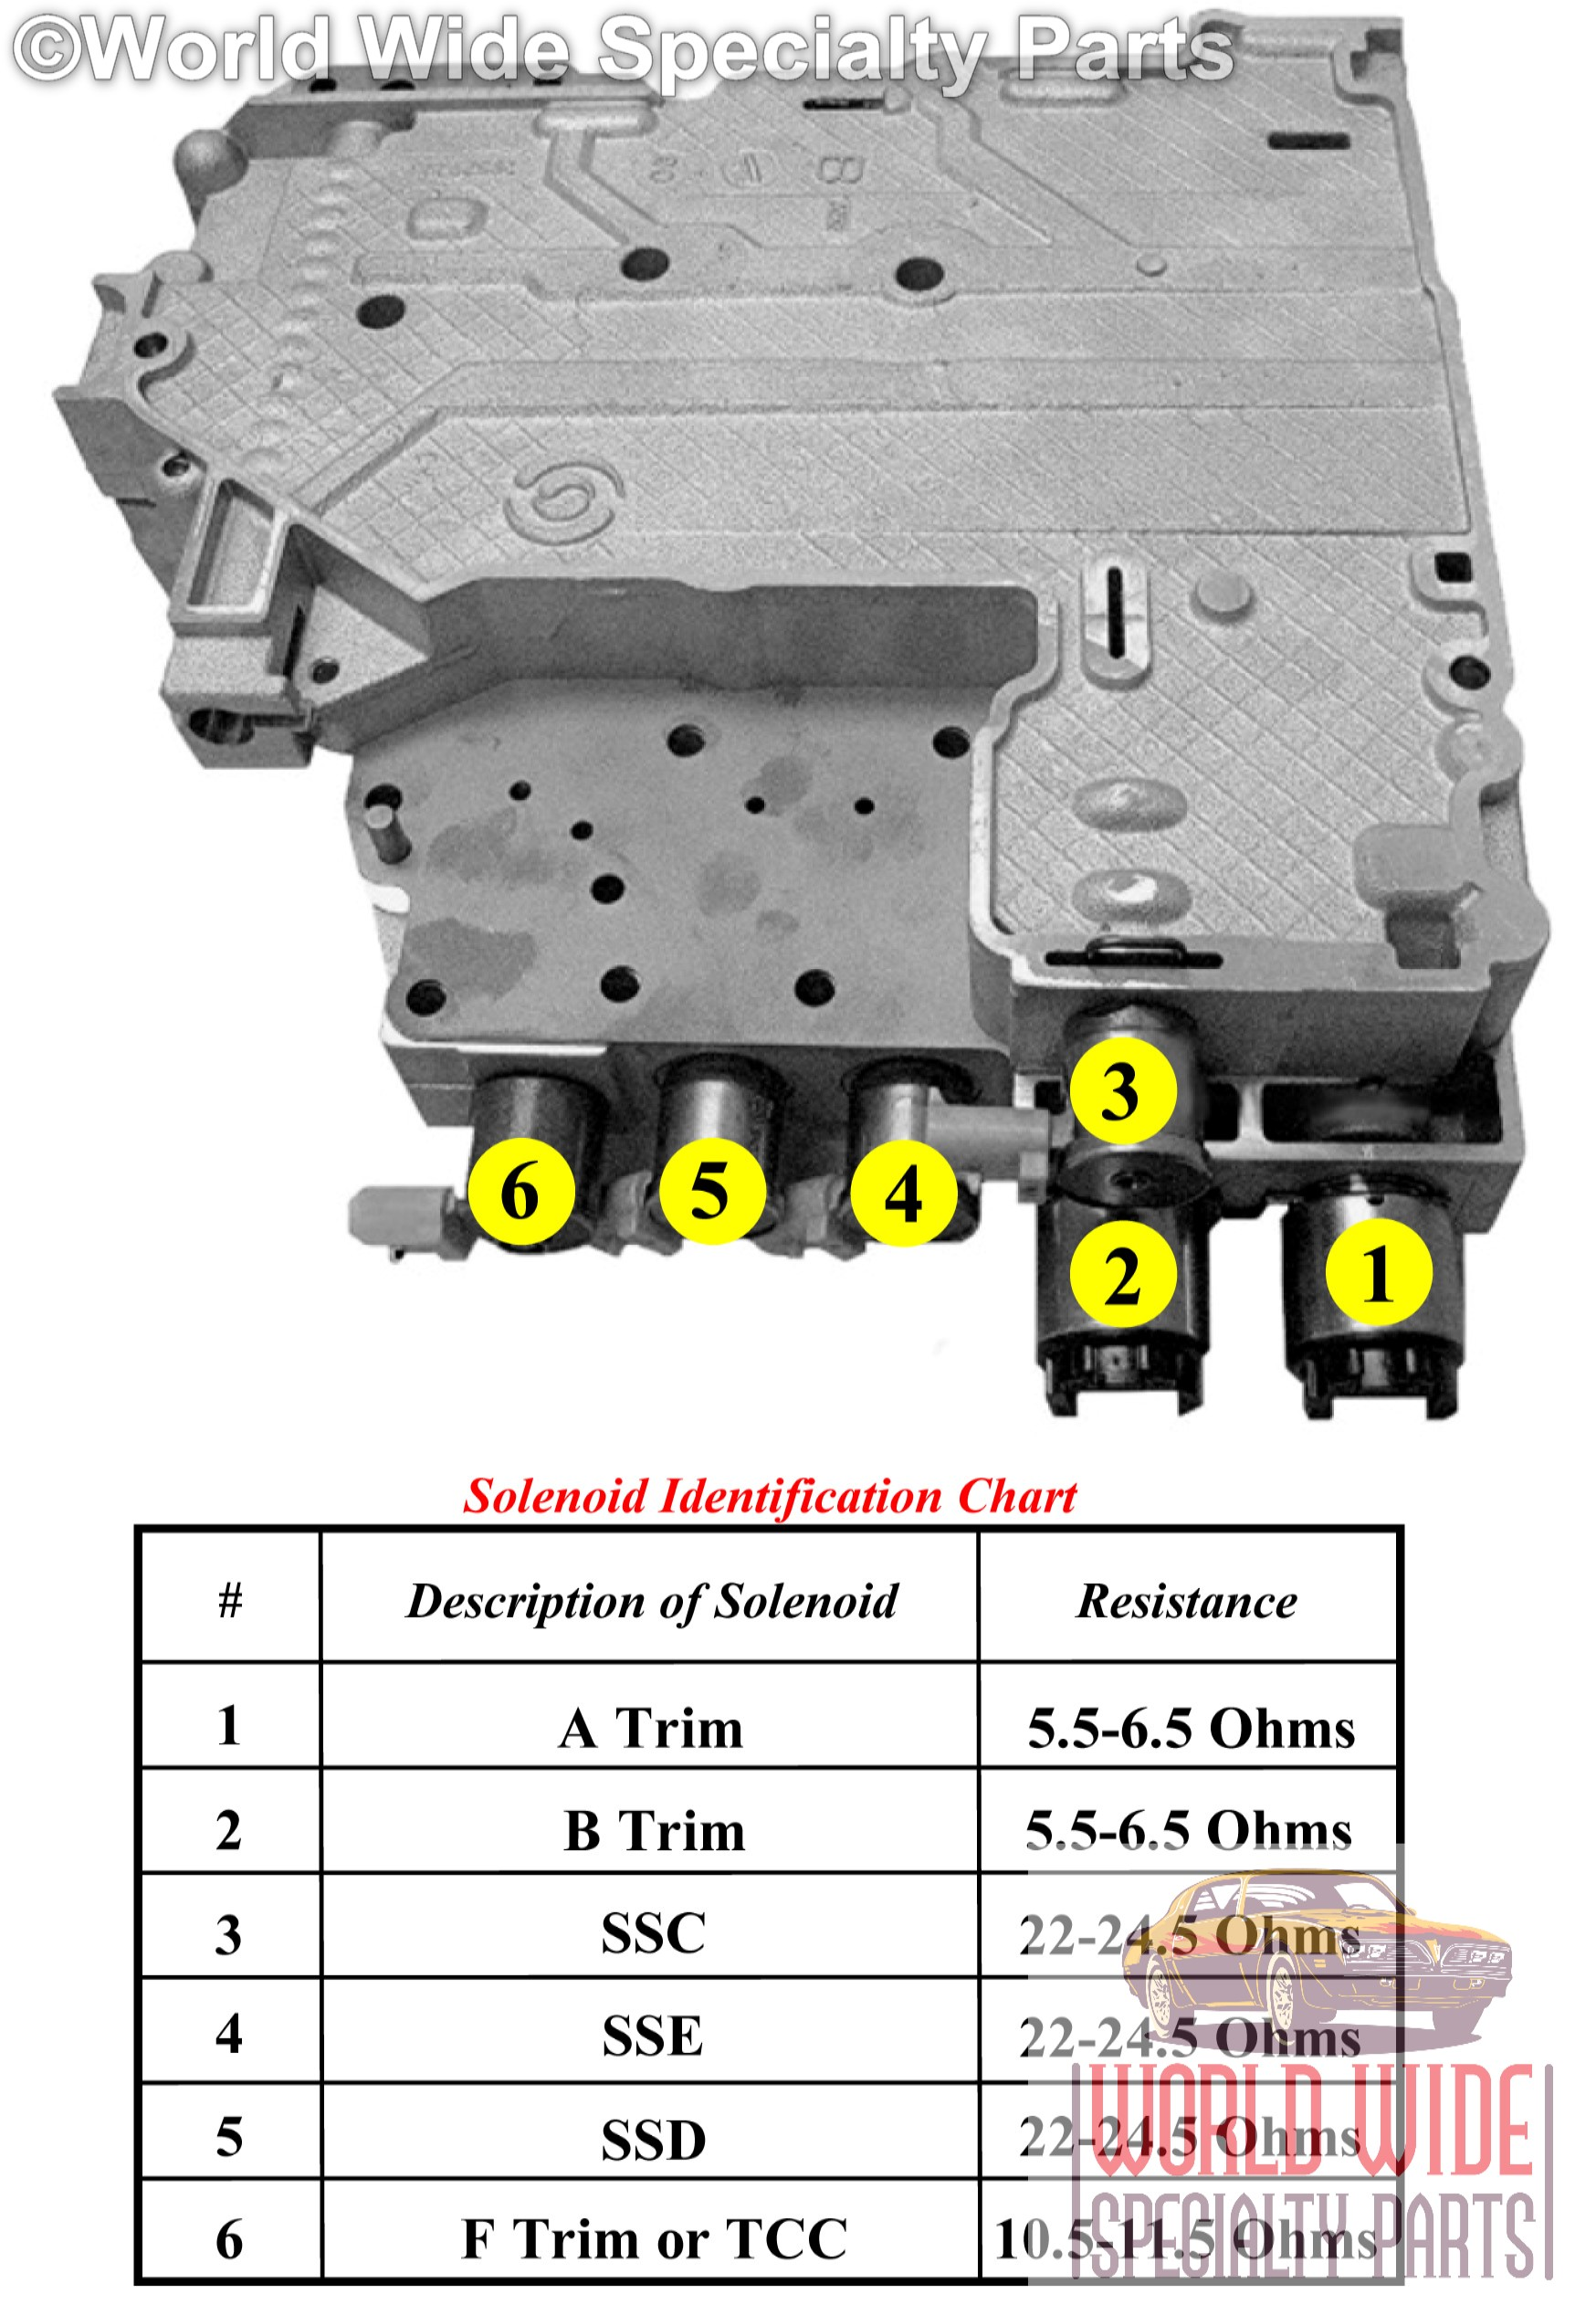 31 Allison 1000 Valve Body Diagram